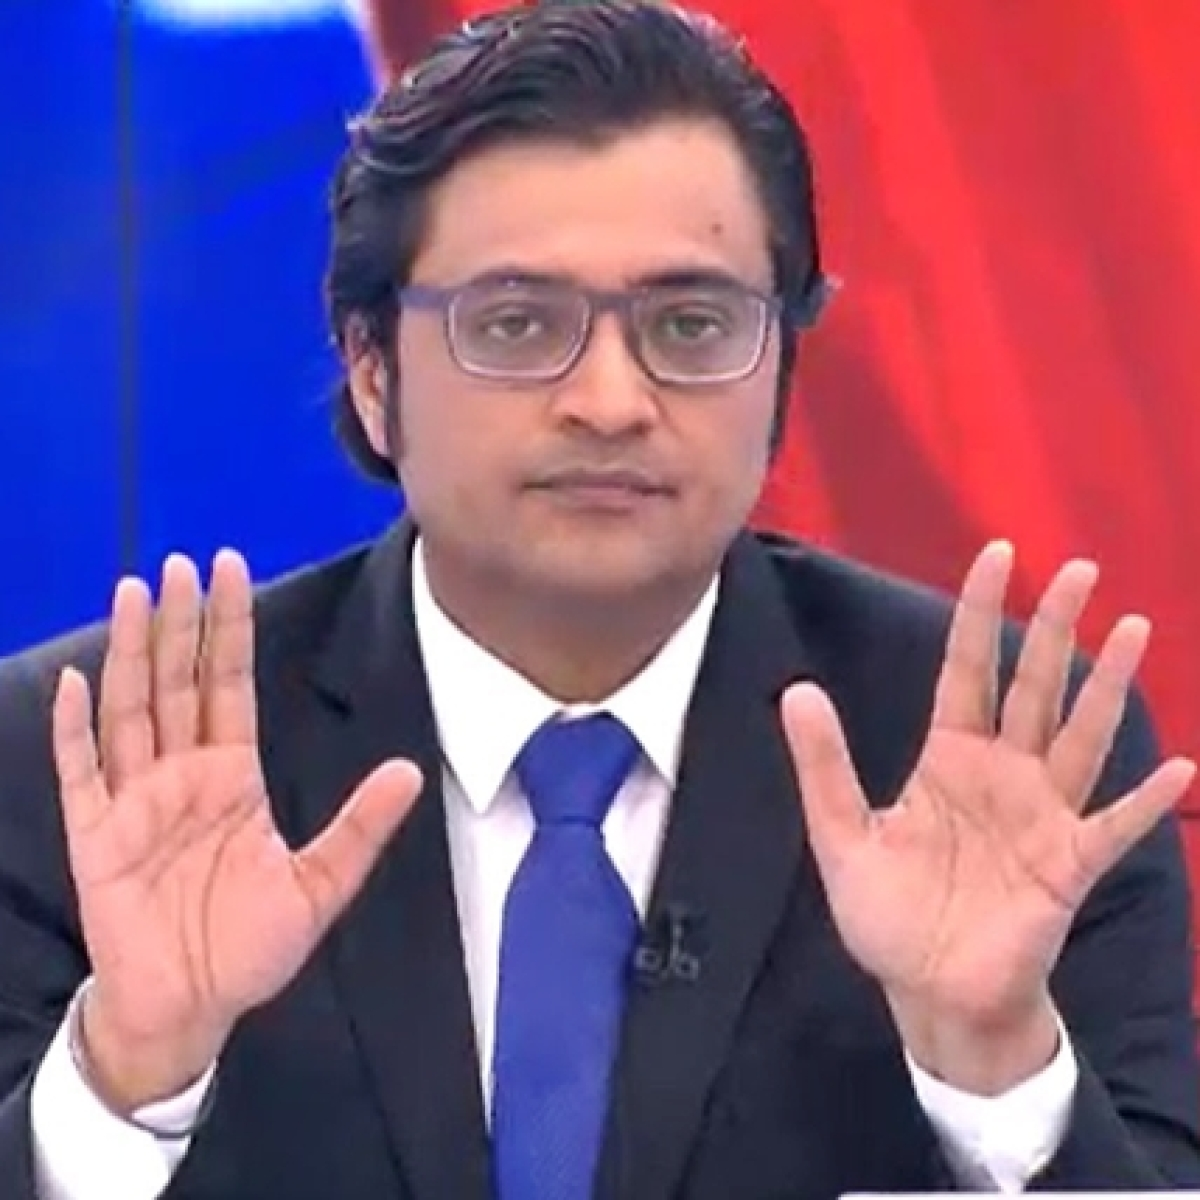 Watch: Arnab Goswami's 'where is the encounter' video goes viral after Vikas Dubey's death